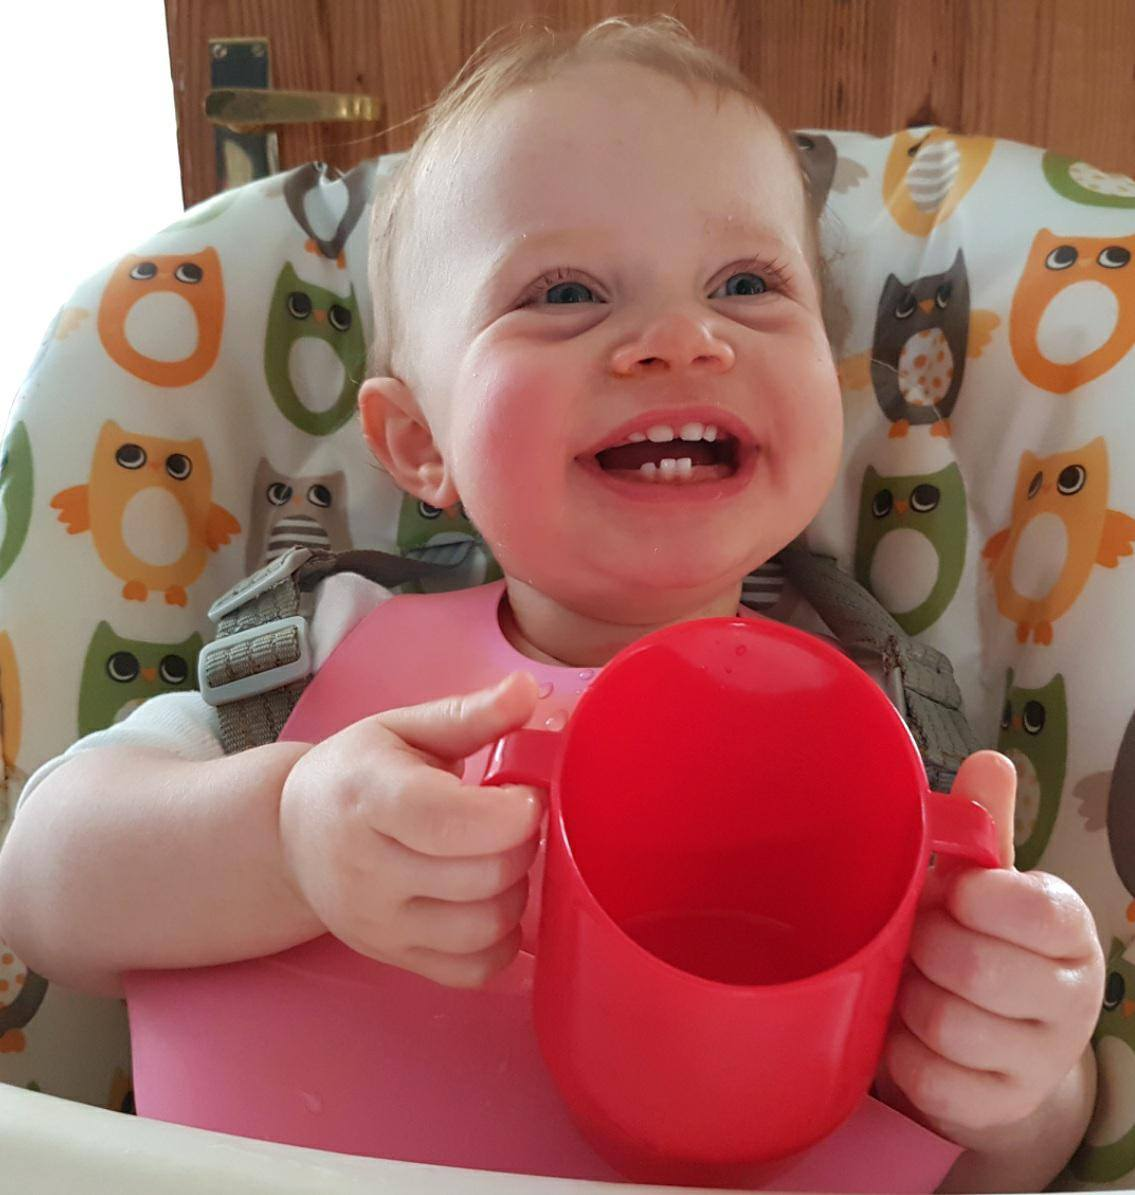 Doidy cups better for baby's teeth